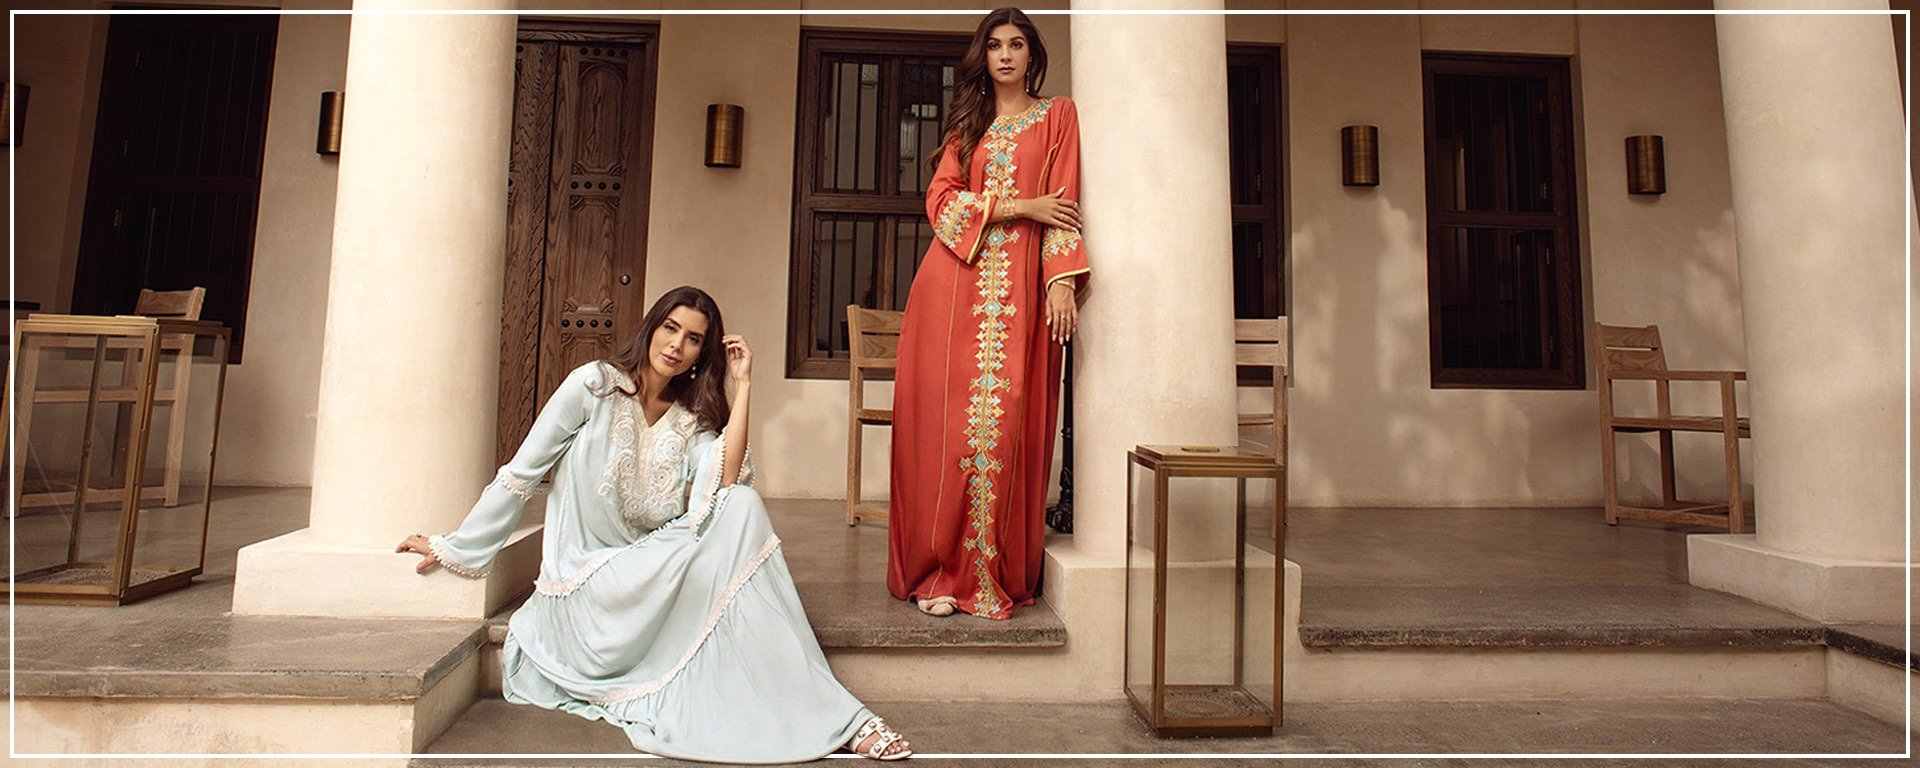 Islamic Fashion Clothing Online Store Kashkha Modest Fashion